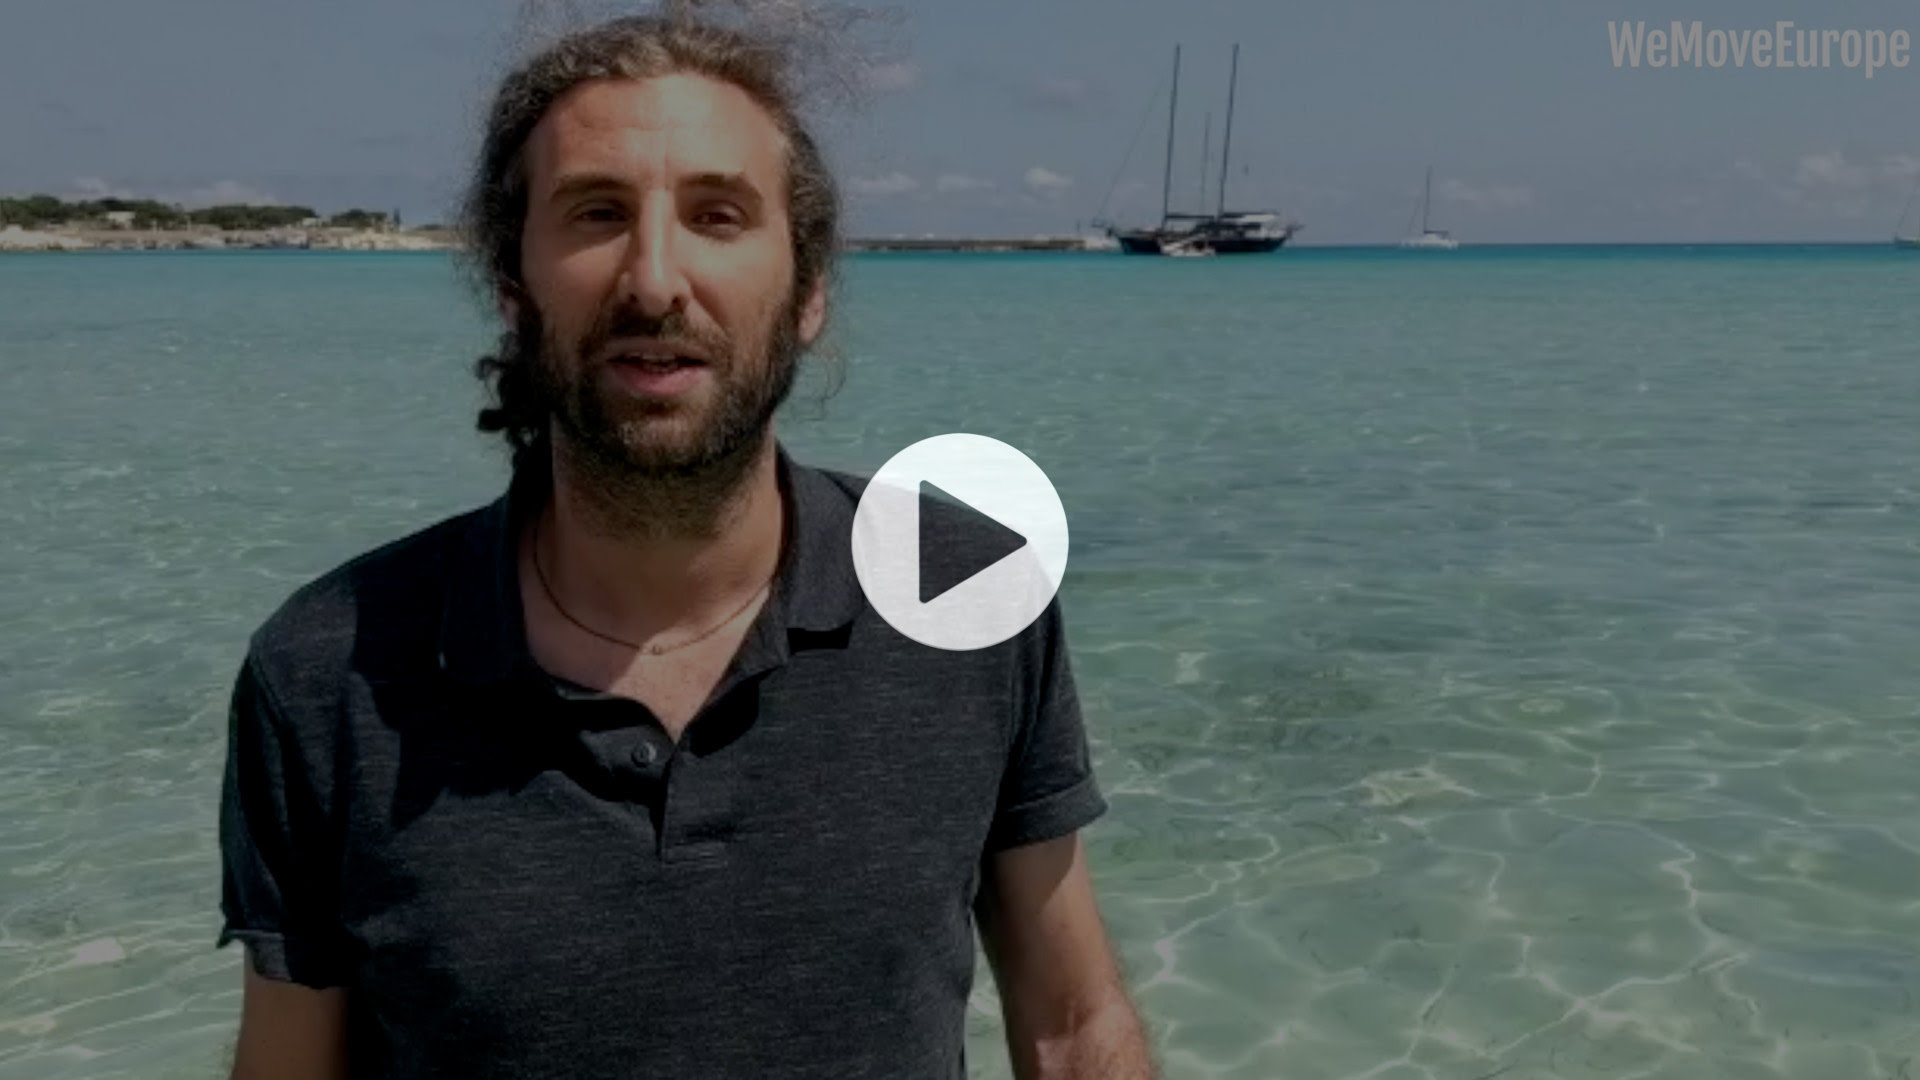 Man stands to left of image, standing in front of blue ocean, play button over top